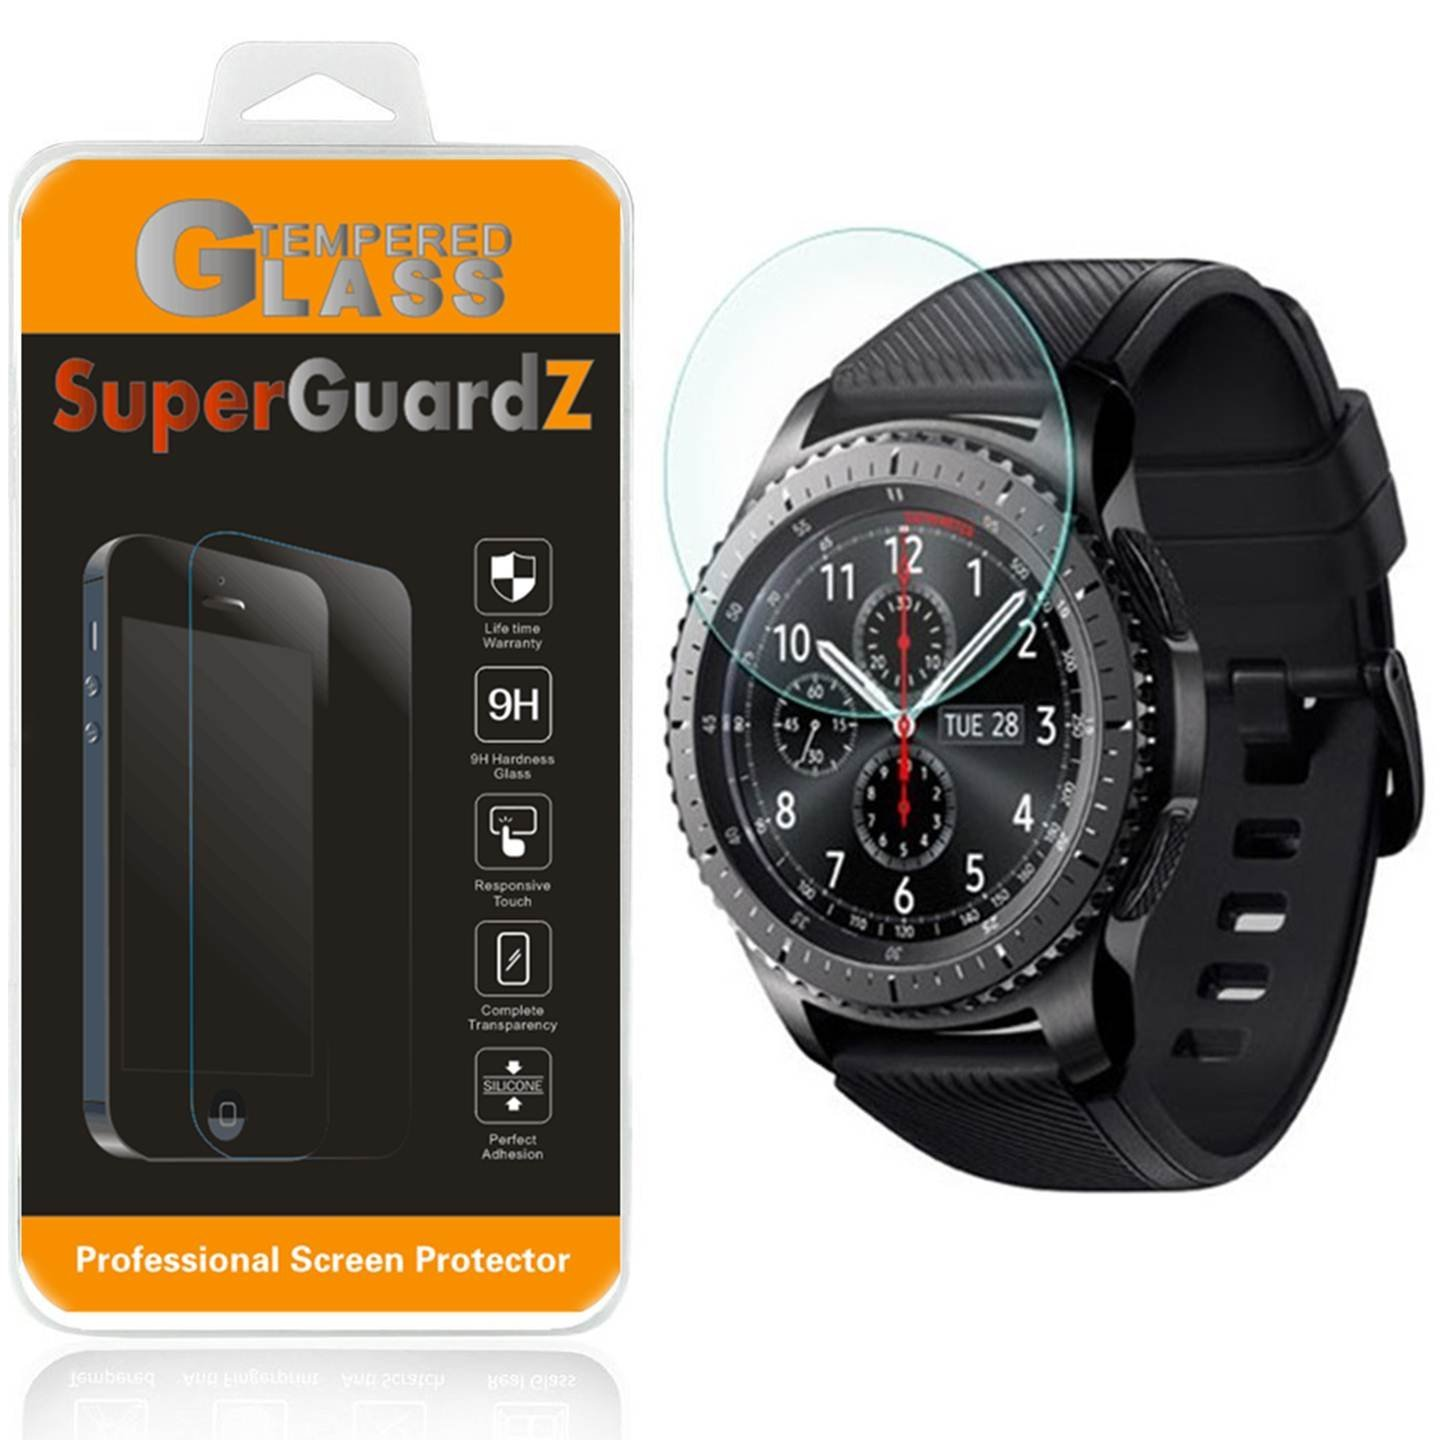 [3-Pack] For Samsung Gear S3 Frontier - SuperGuardZ Tempered Glass Screen Protector, 9H, Anti-Scratch, Anti-Bubble, Anti-Fingerprint